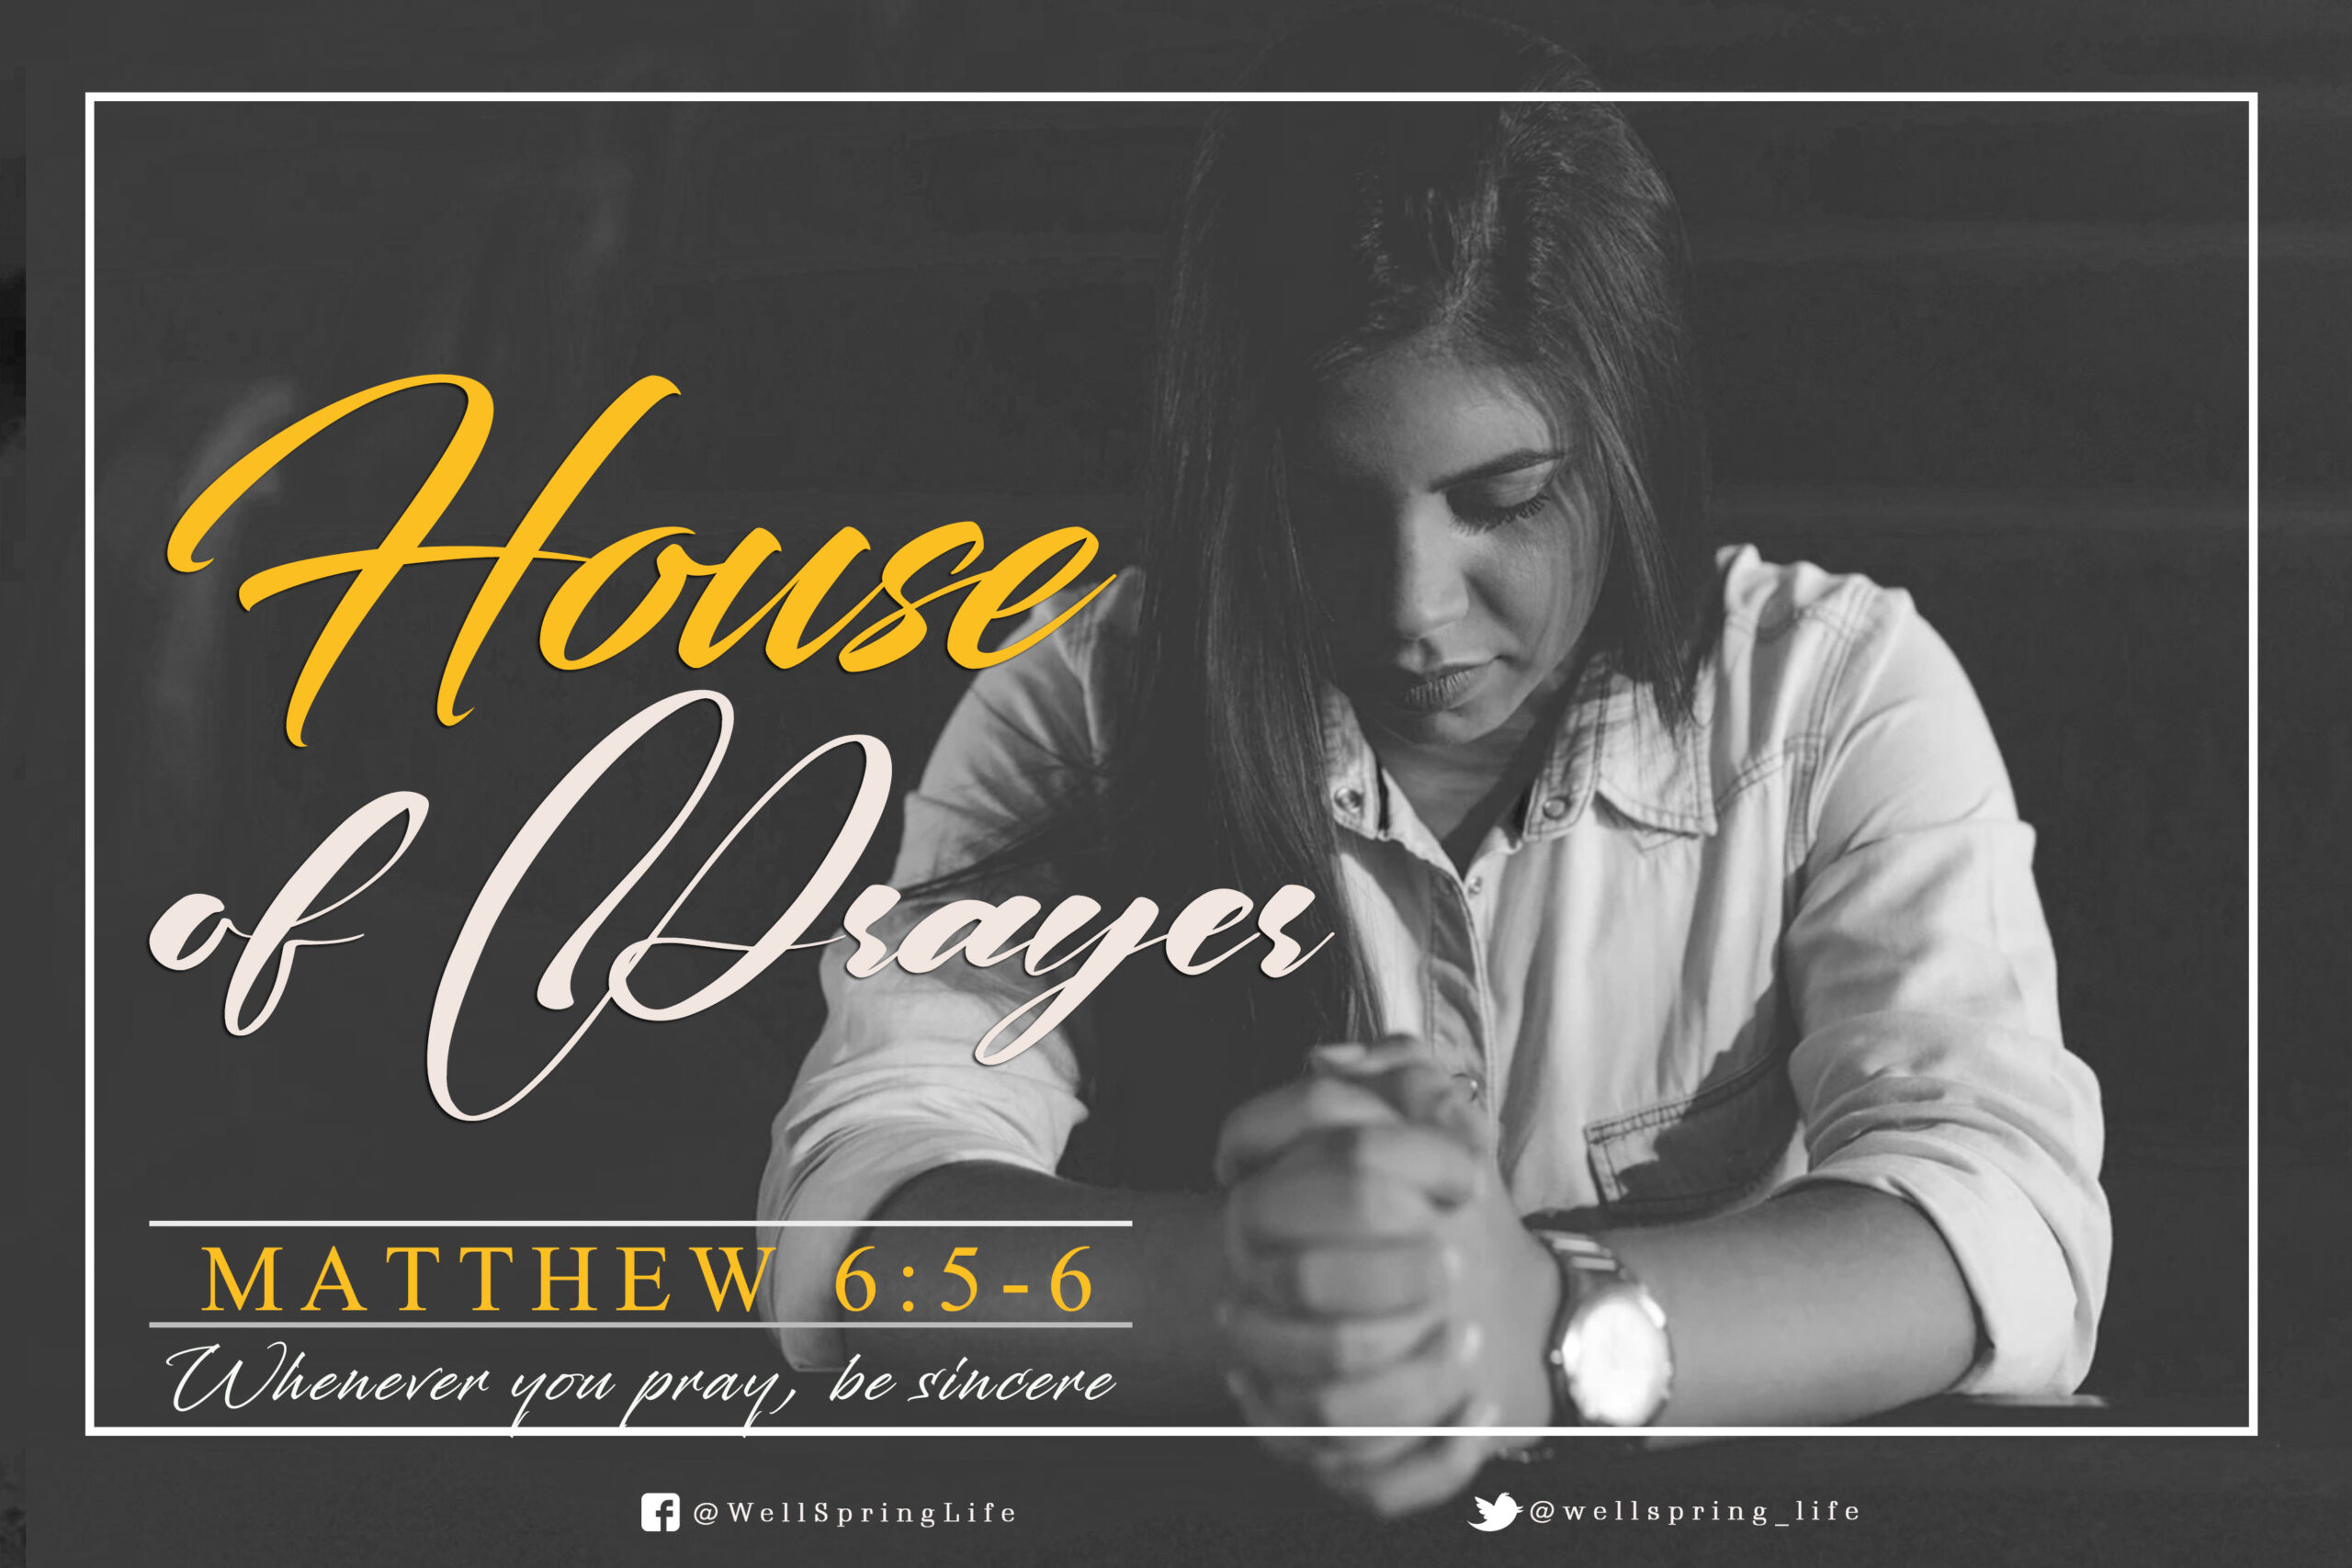 House of Prayer post thumbnail